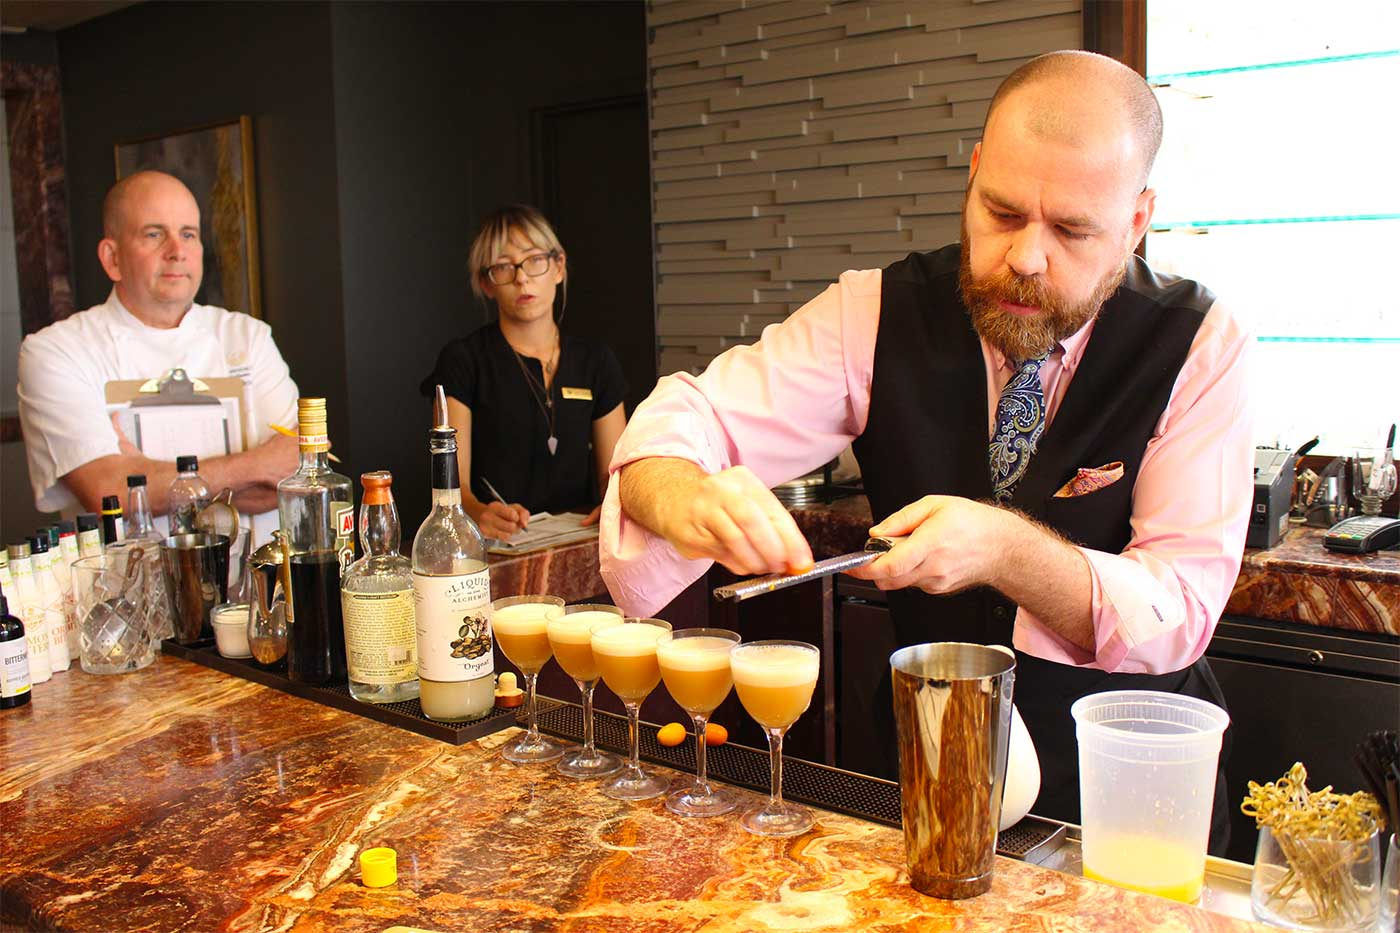 Peter Hicks prepares his cocktails